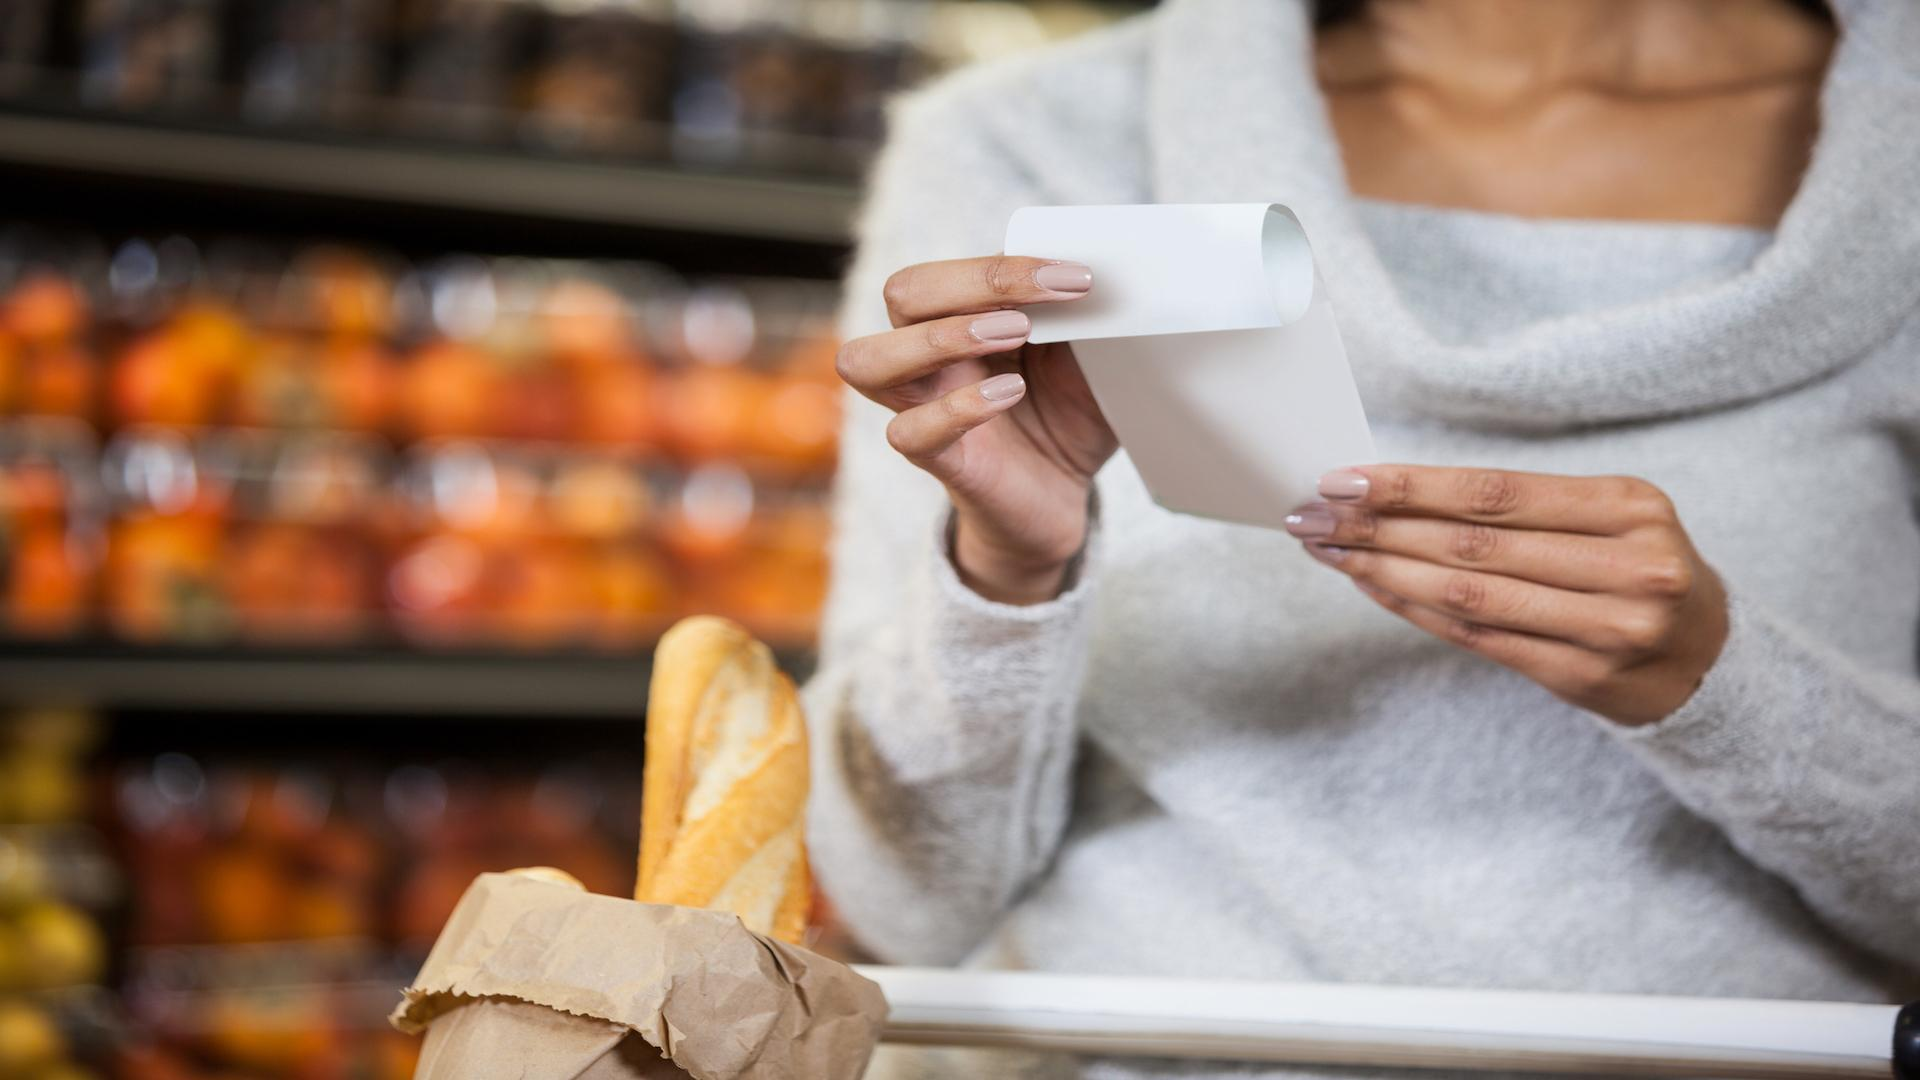 picture 6 Simple Grocery Swaps You Should Make To Lose Weight—And Save 60 Per Month